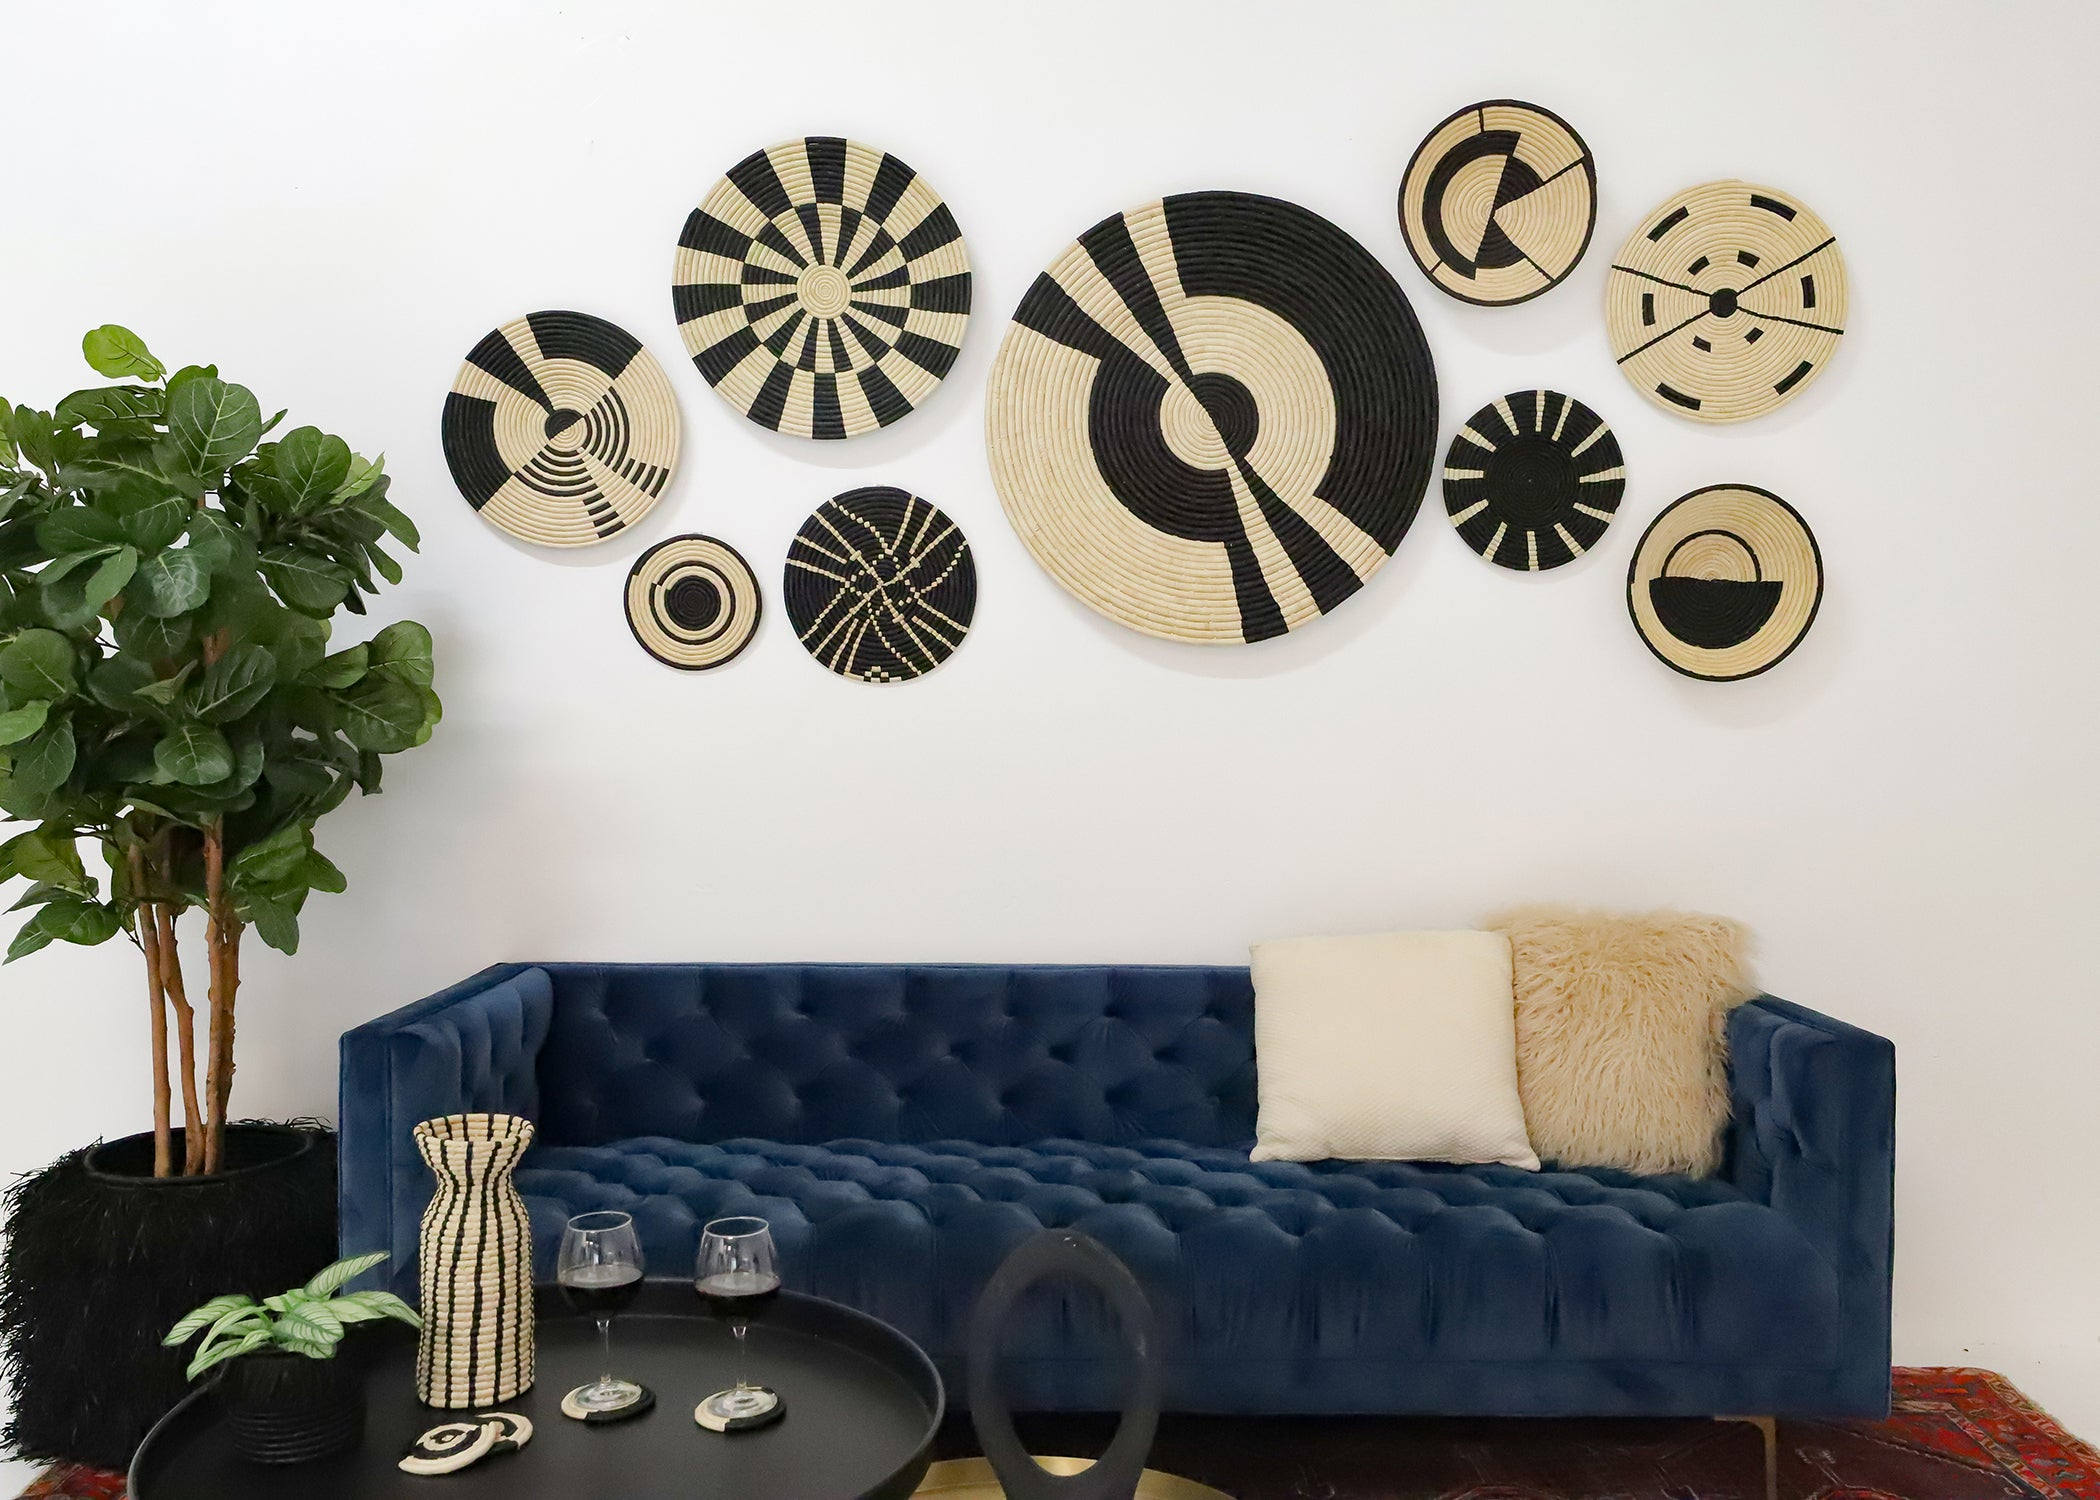 Compassed Black Plate - KAZI - Artisan made high quality home decor and wall art